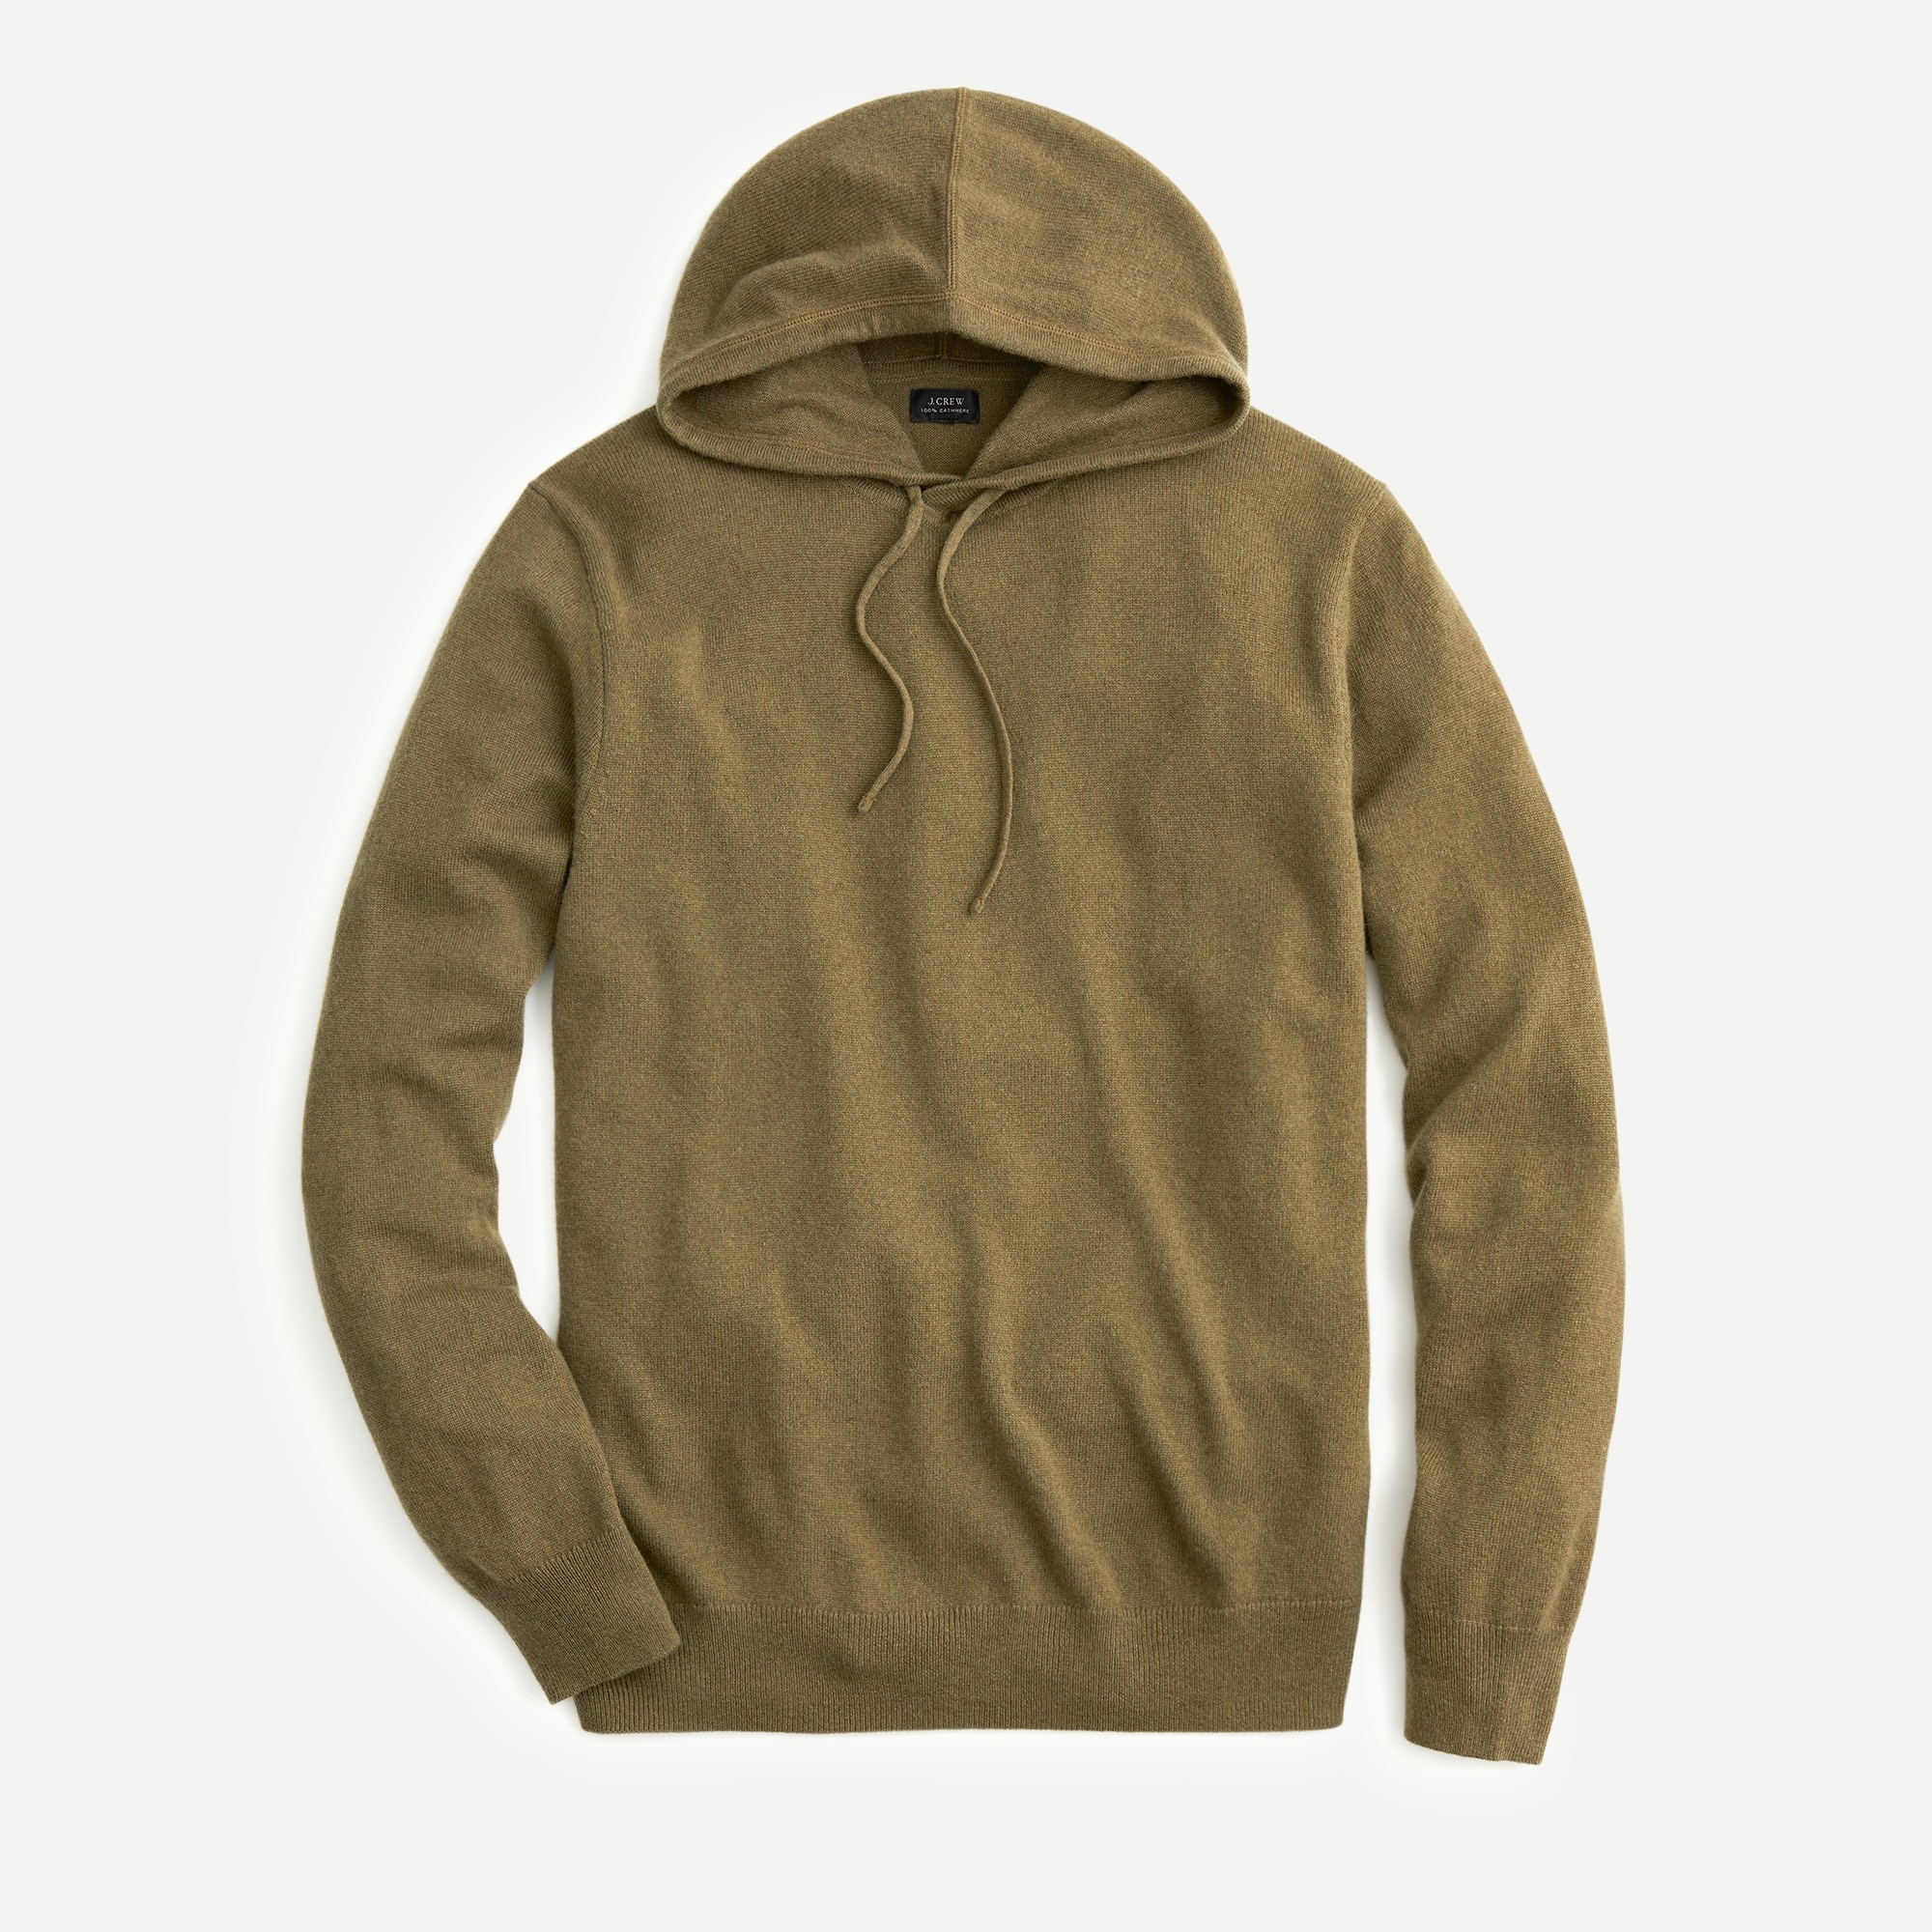 Image 2 for Everyday cashmere hoodie